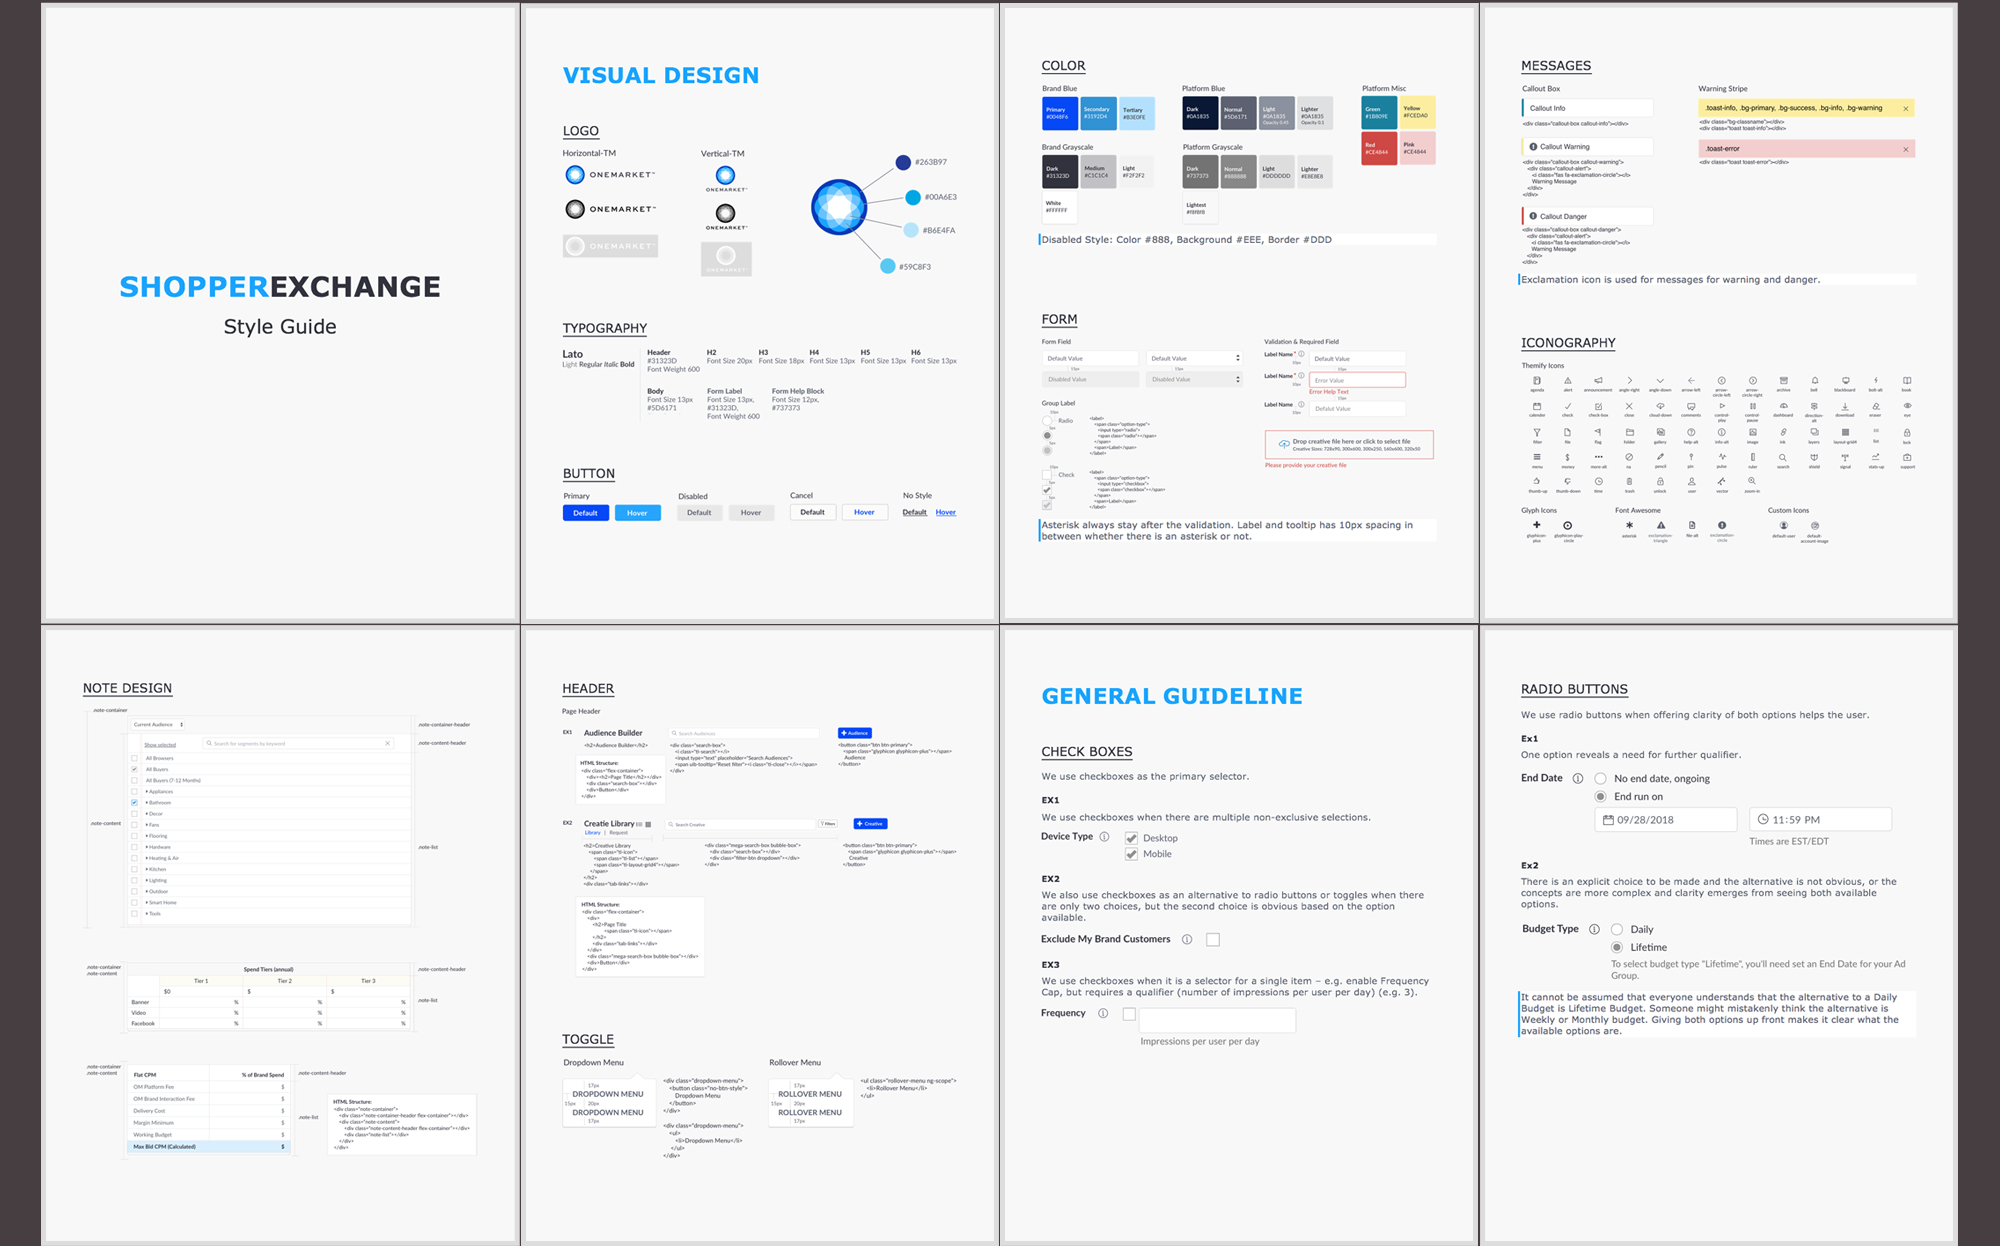 OneMarket Style Guide Design